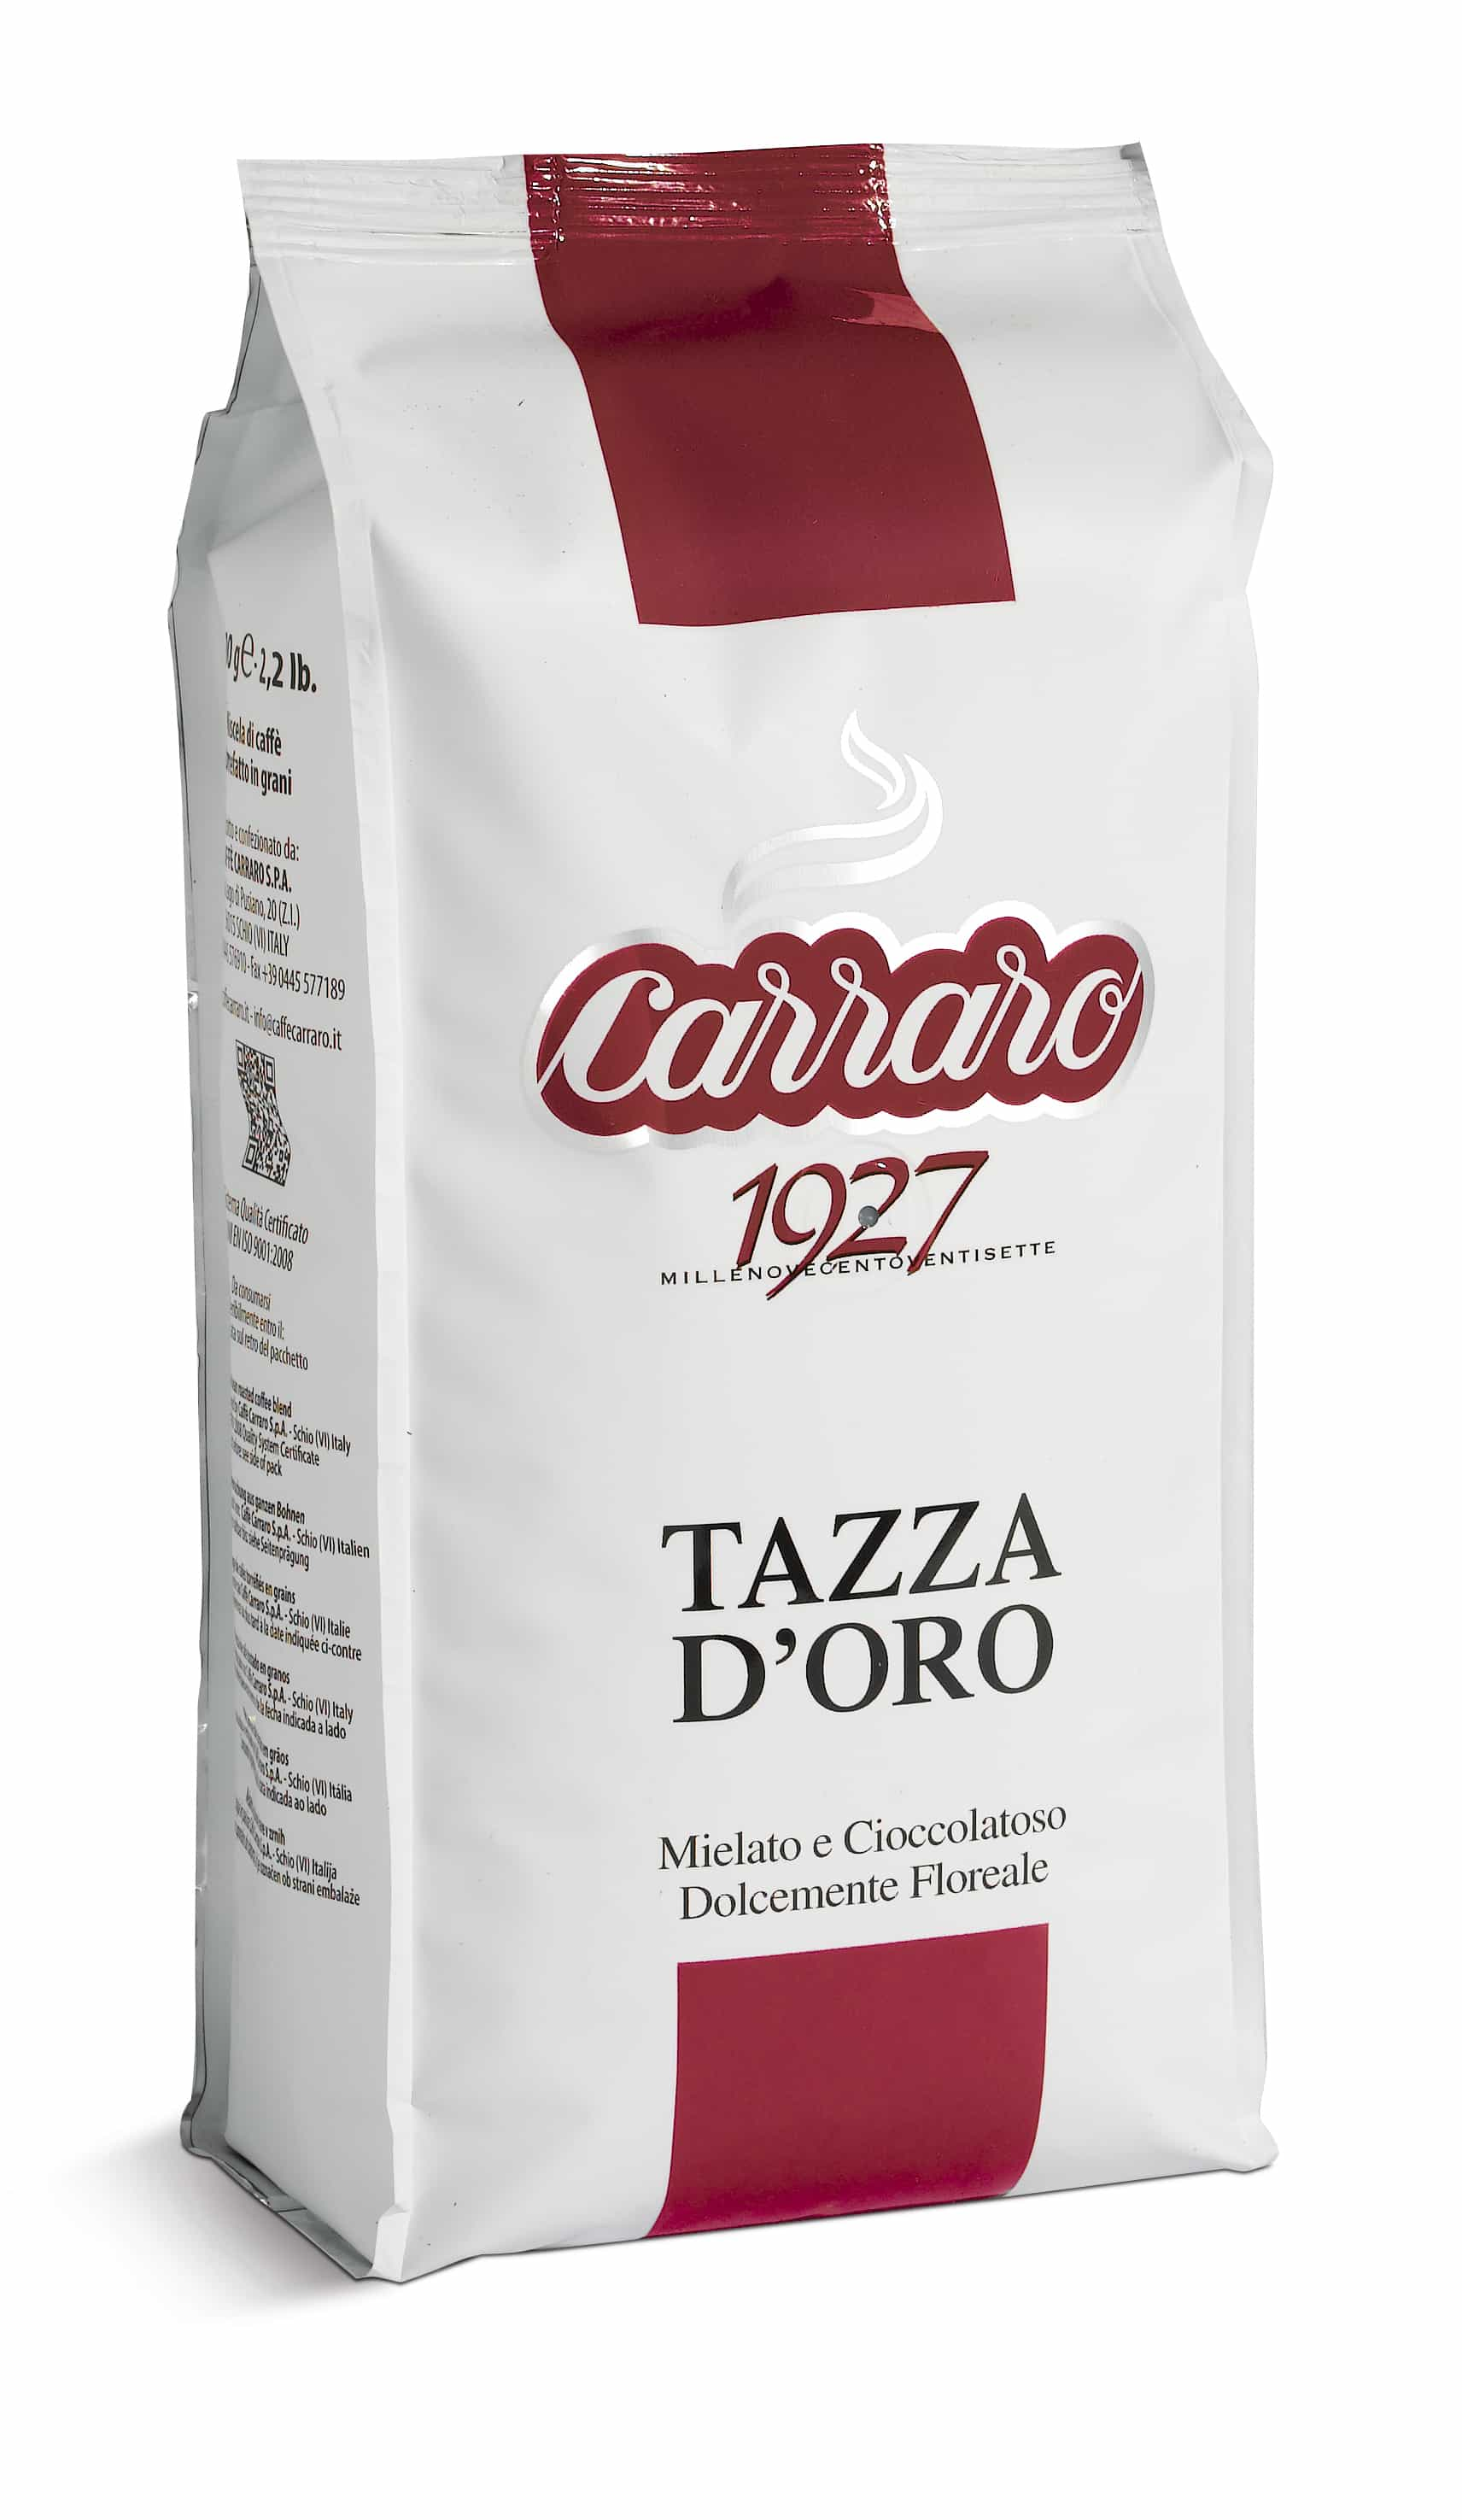 Caffe Carraro Tazza D'Oro coffee beans